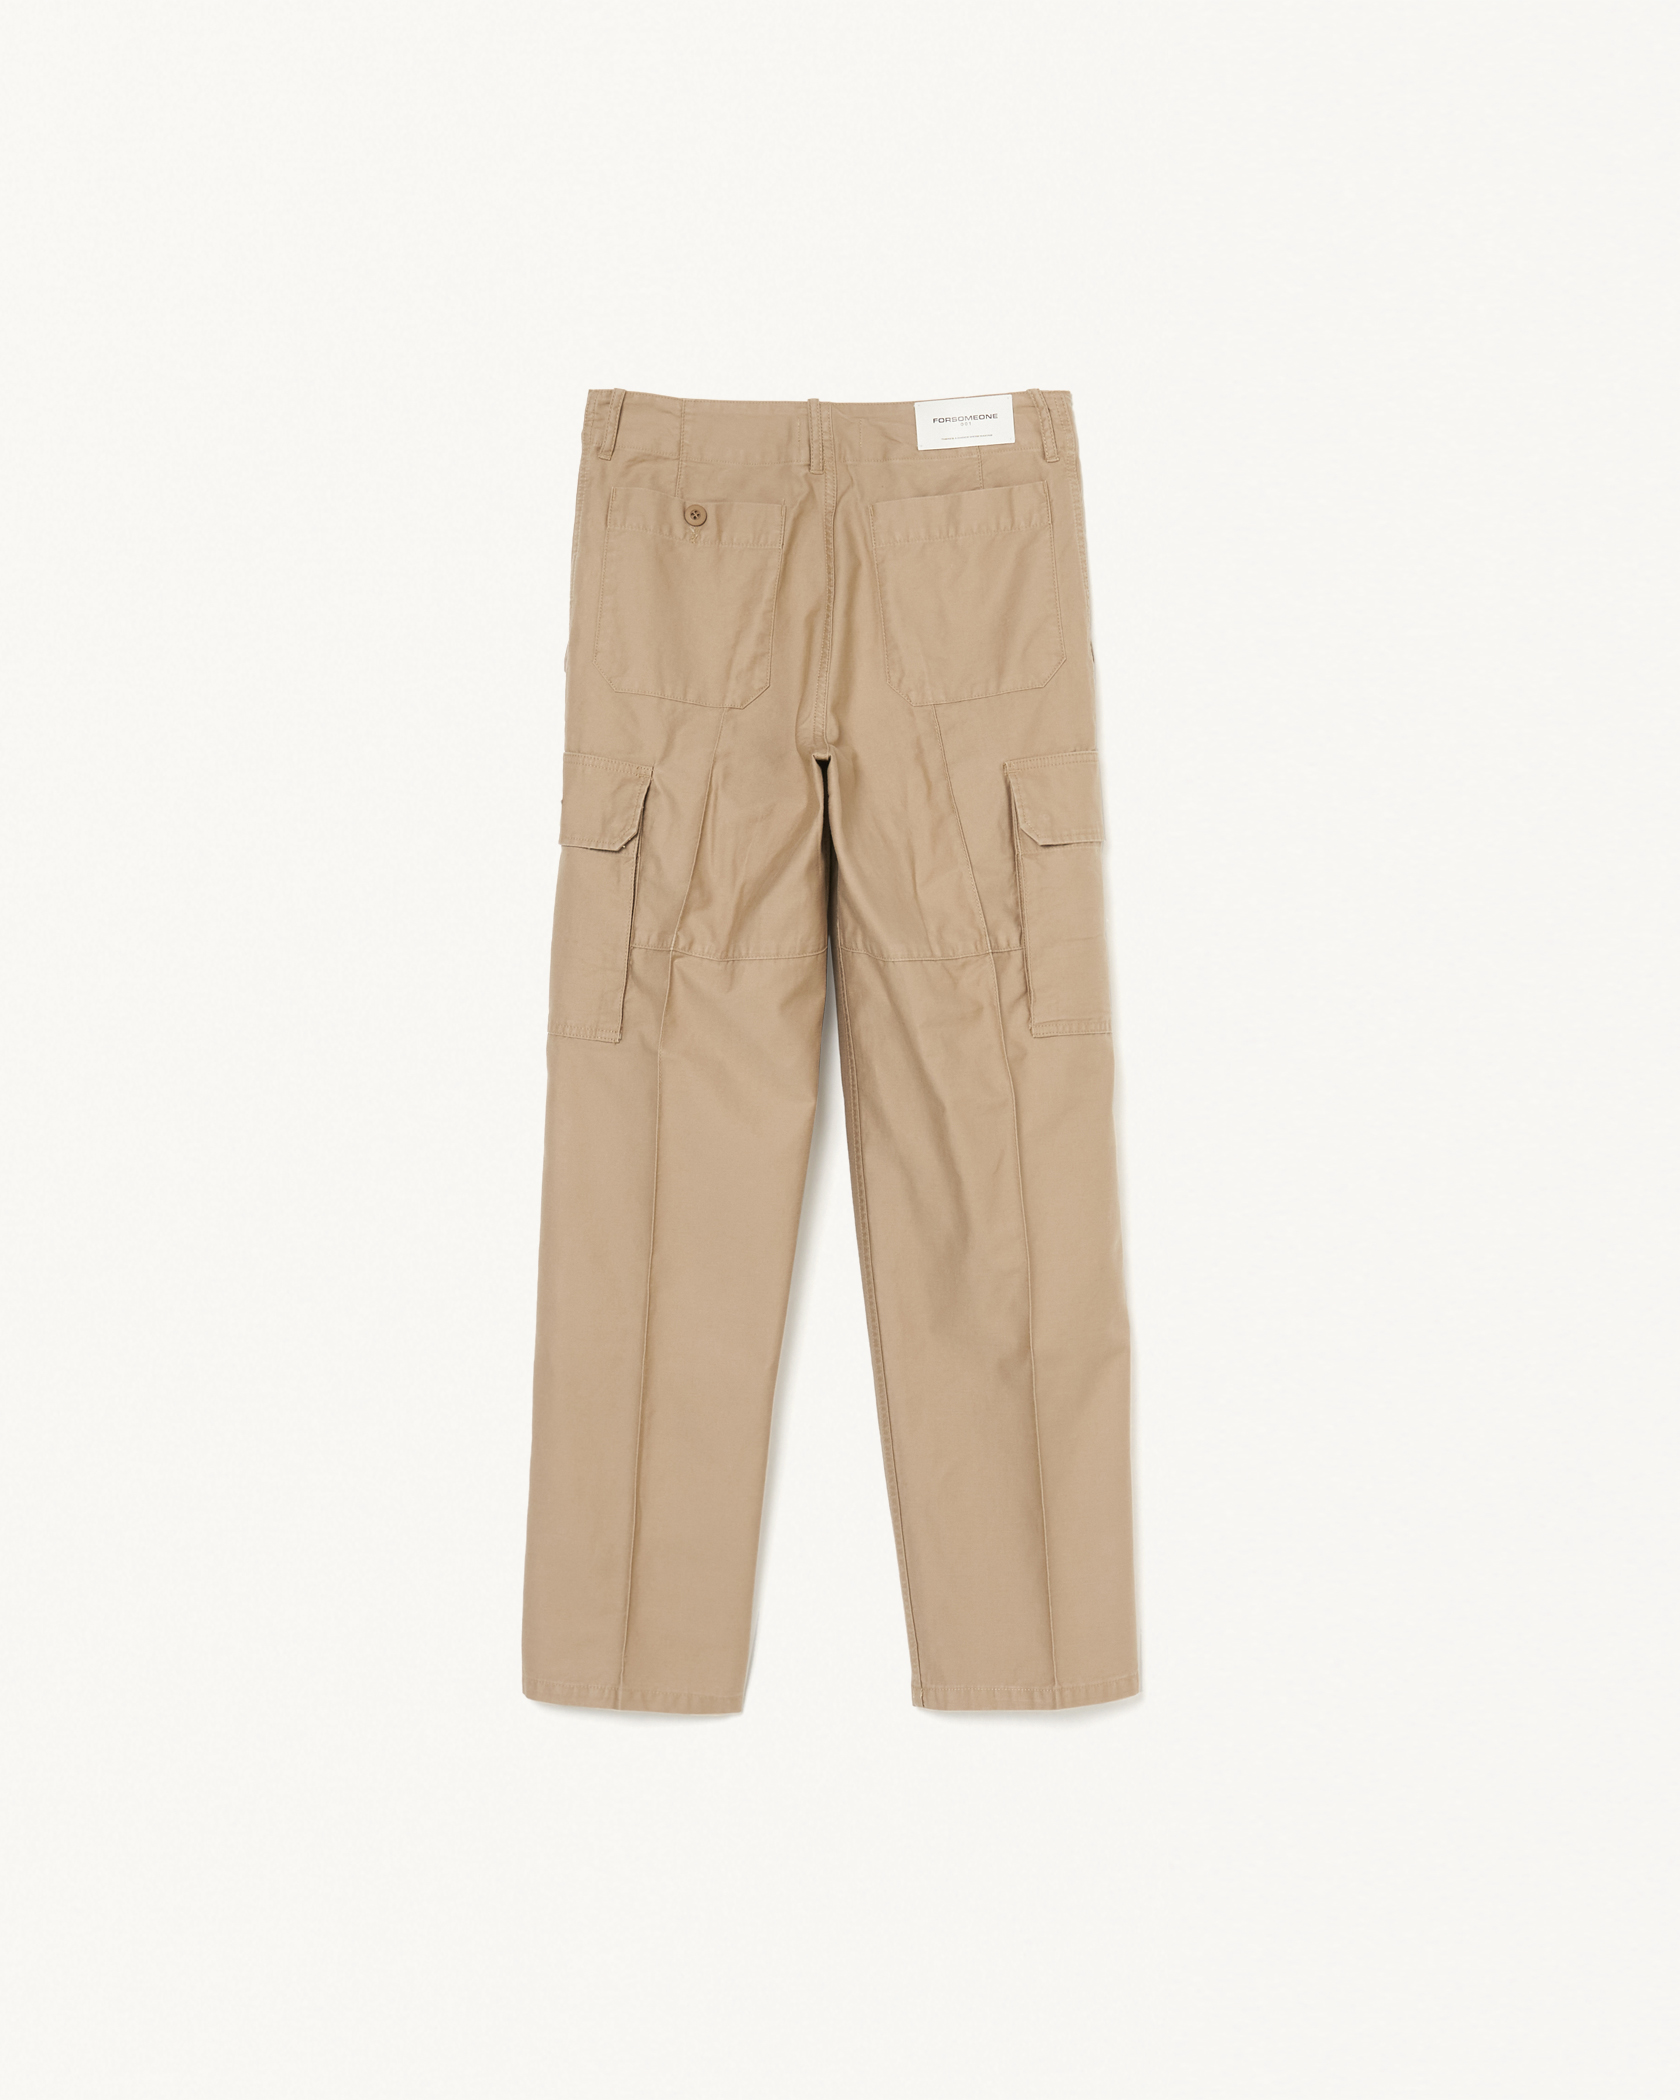 CARGO TROUSERS 詳細画像 Olive 4